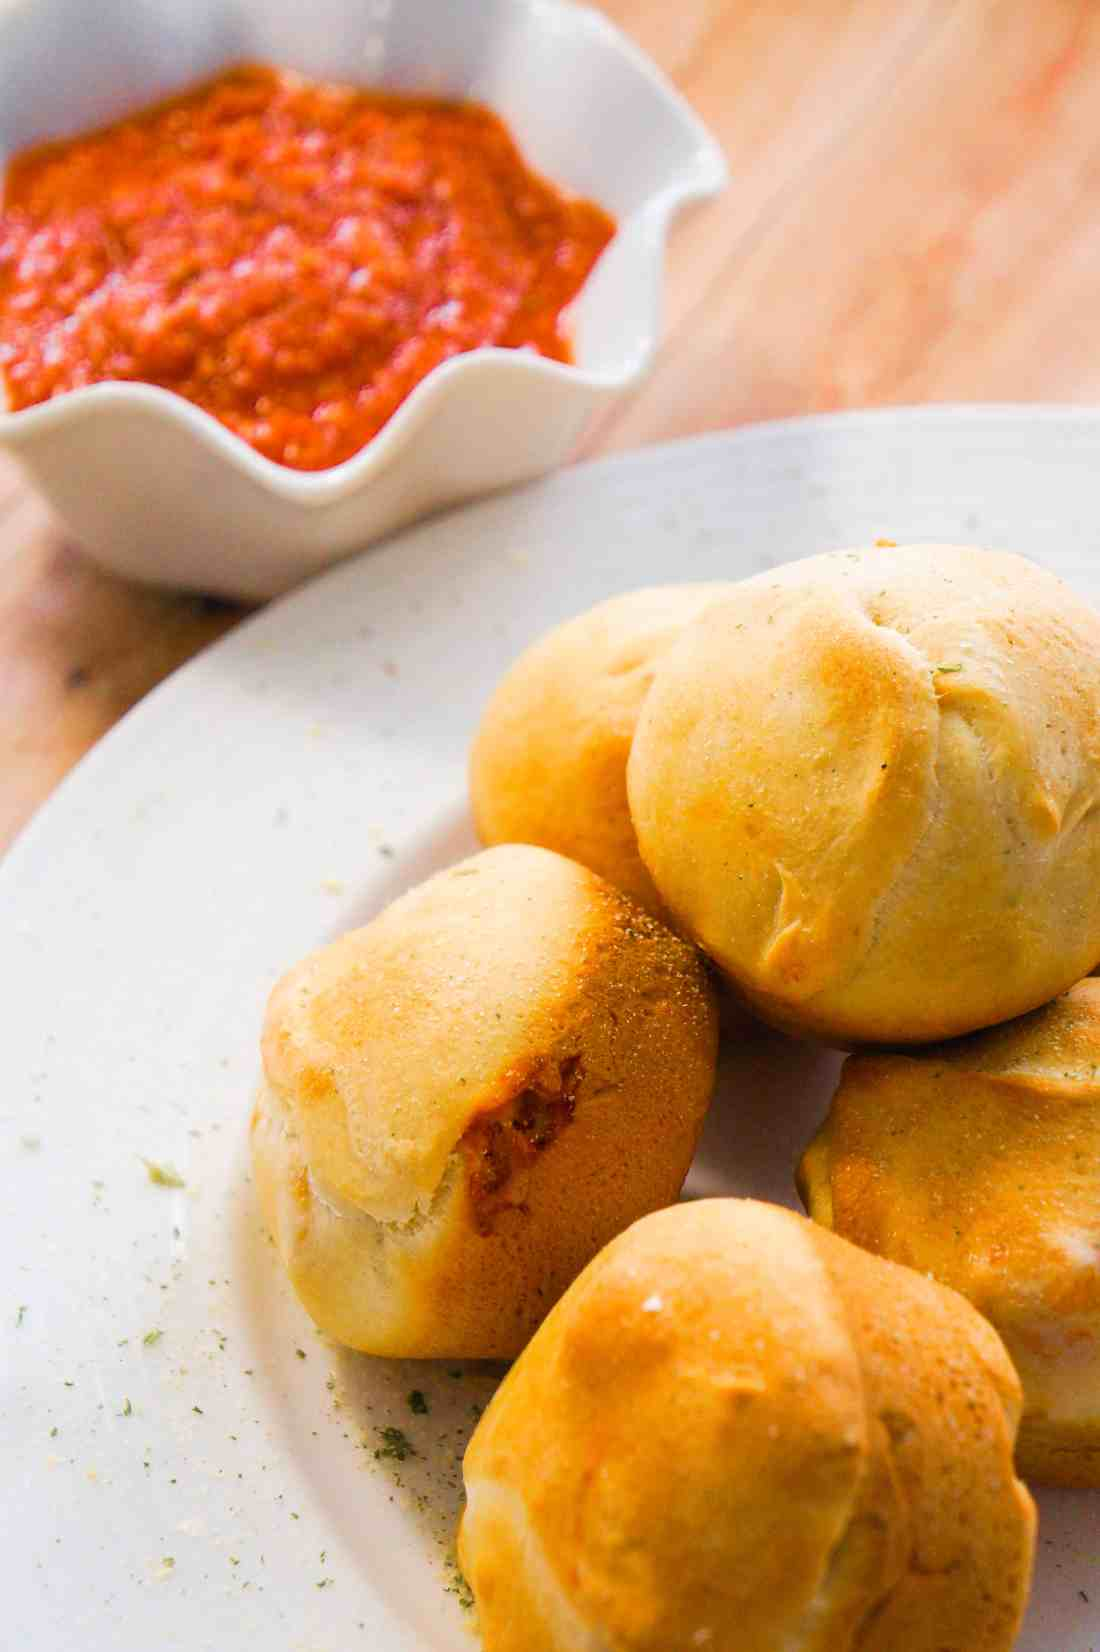 Cheesy Macaroni Bolognese Bites. Easy party food idea. Tasty Pillsbury dough stuffed with macaroni and cheese. Simple snack recipe with meaty bolognese sauce and cheese.